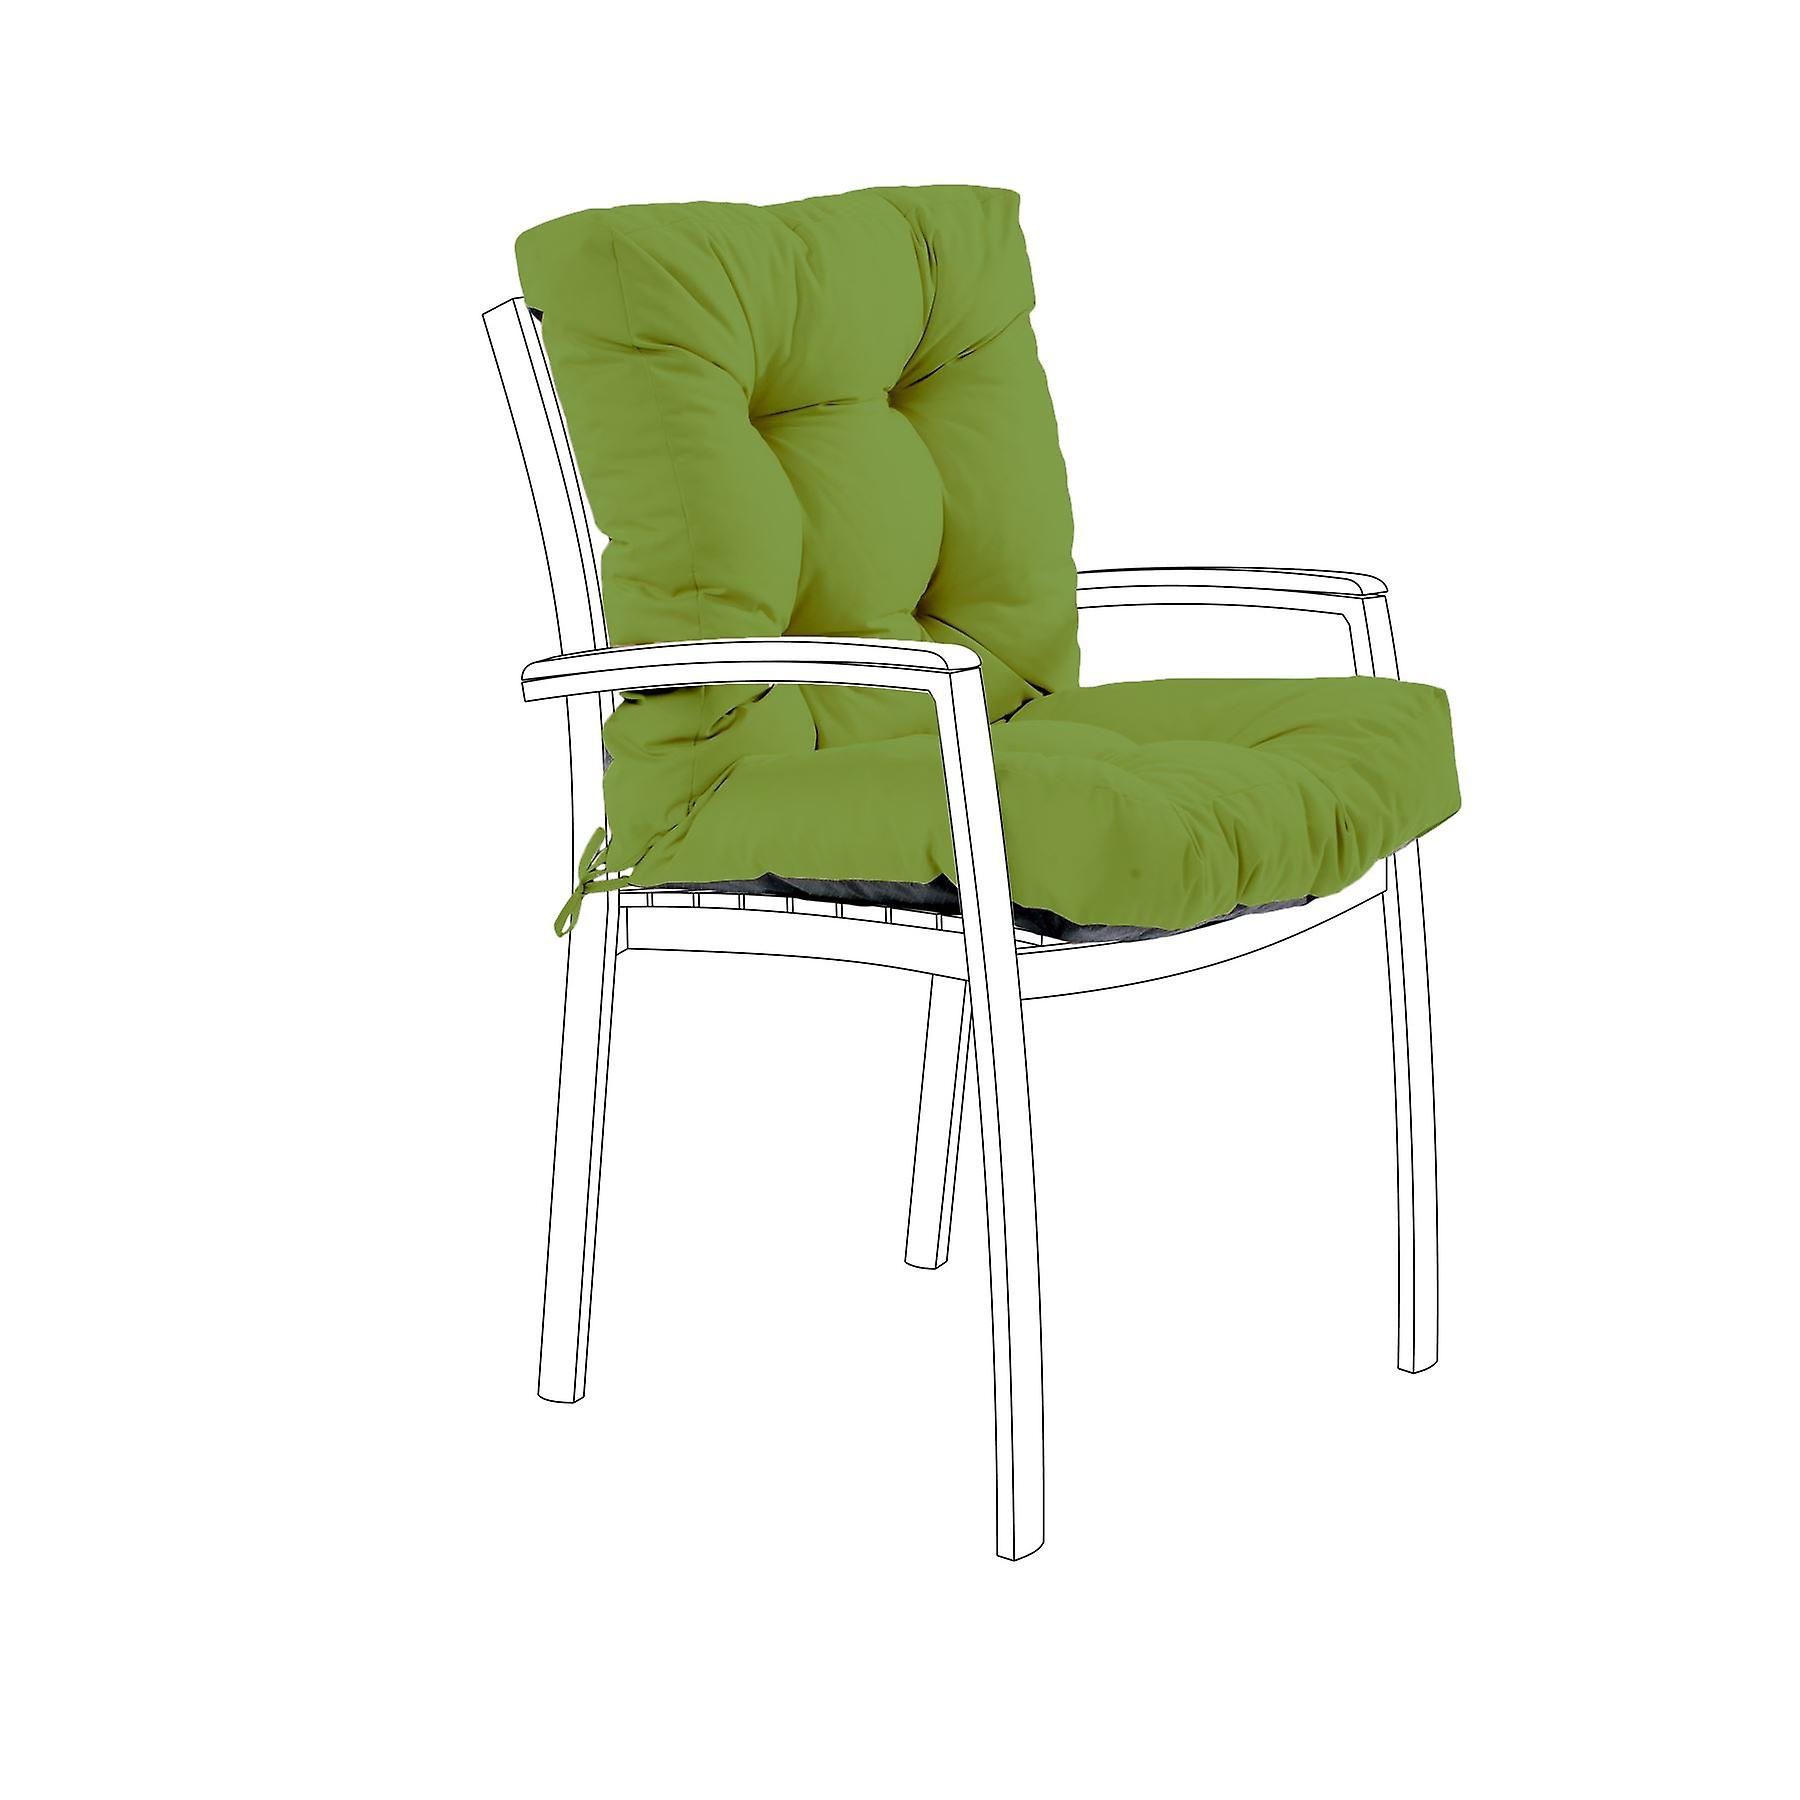 Gardenista® Water Resistant English Ivy Tufted Two Part Chair Cushion